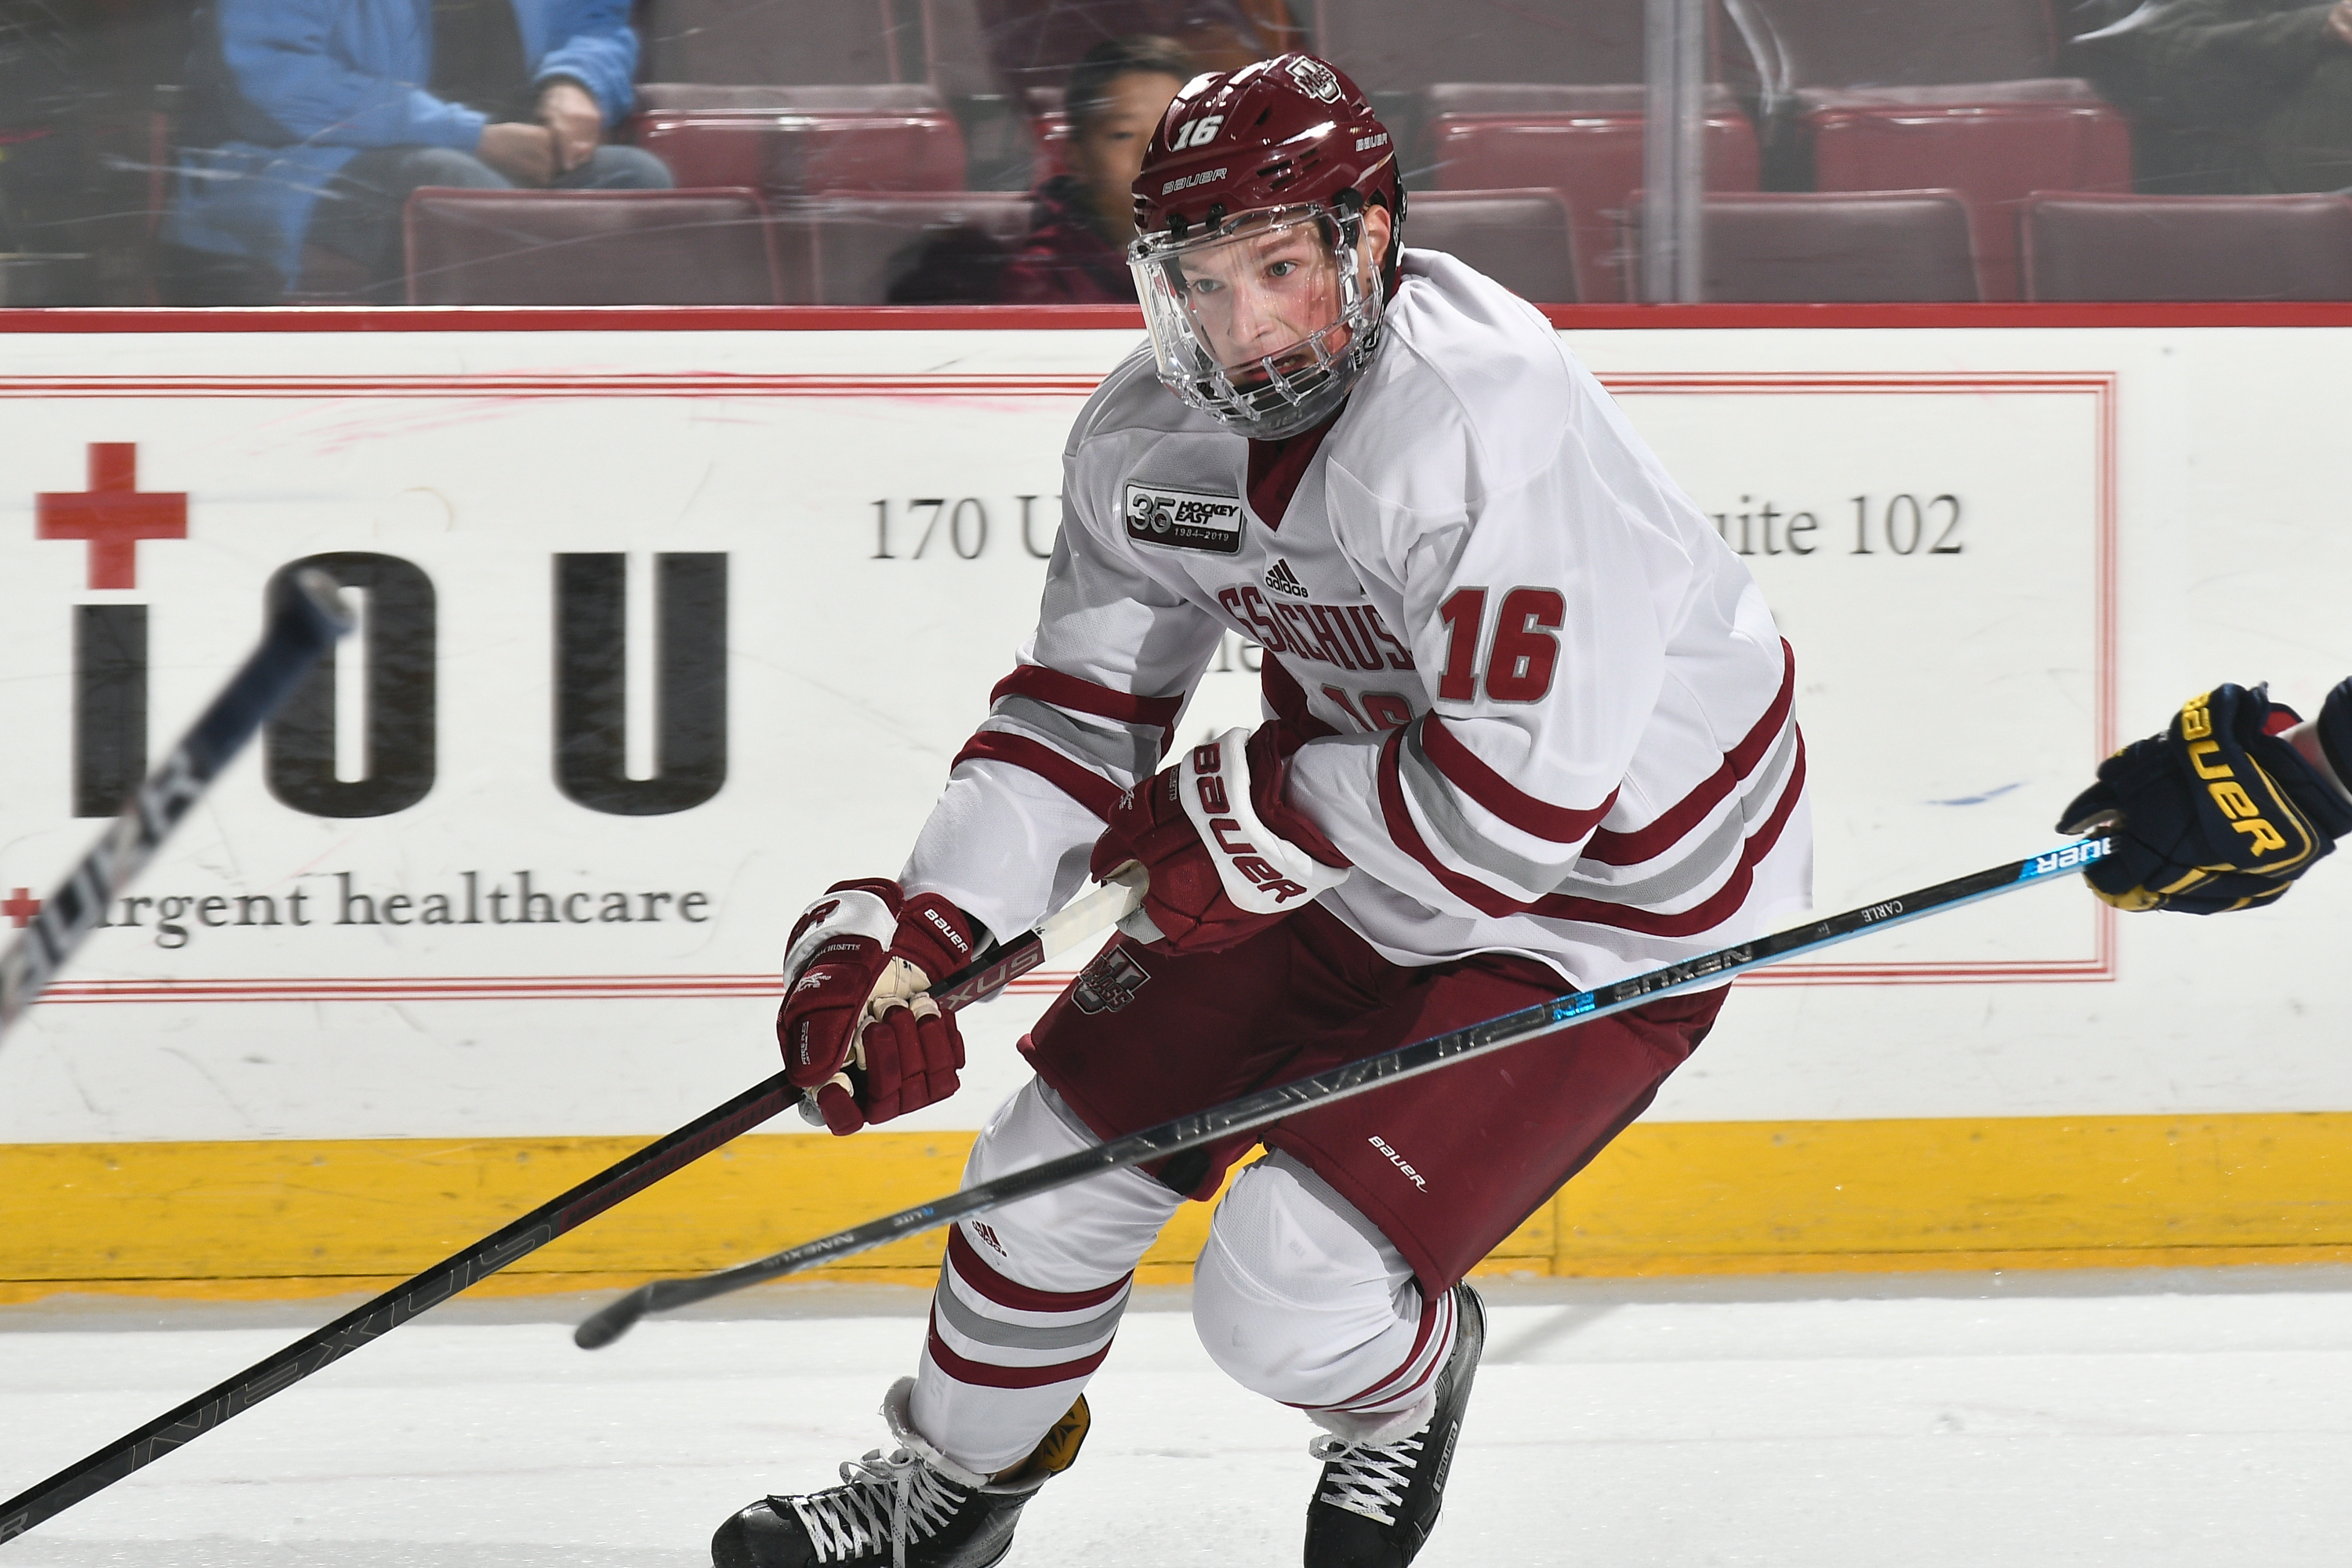 NHL Player and former UMass Amherst student Cale Makar '21